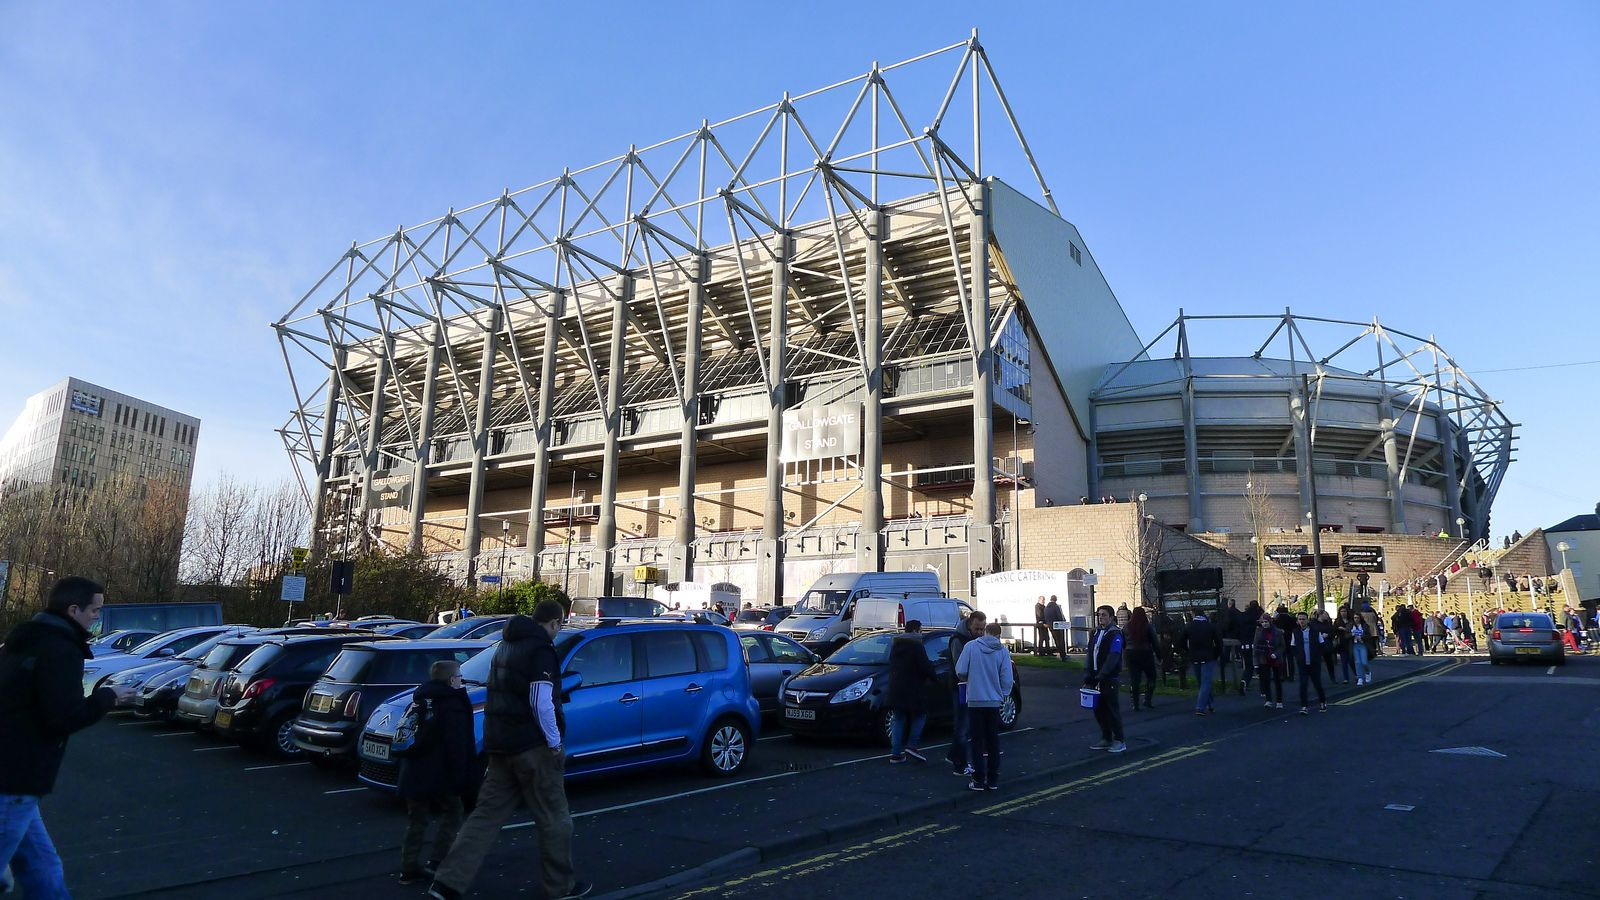 Newcastle United St. James Park